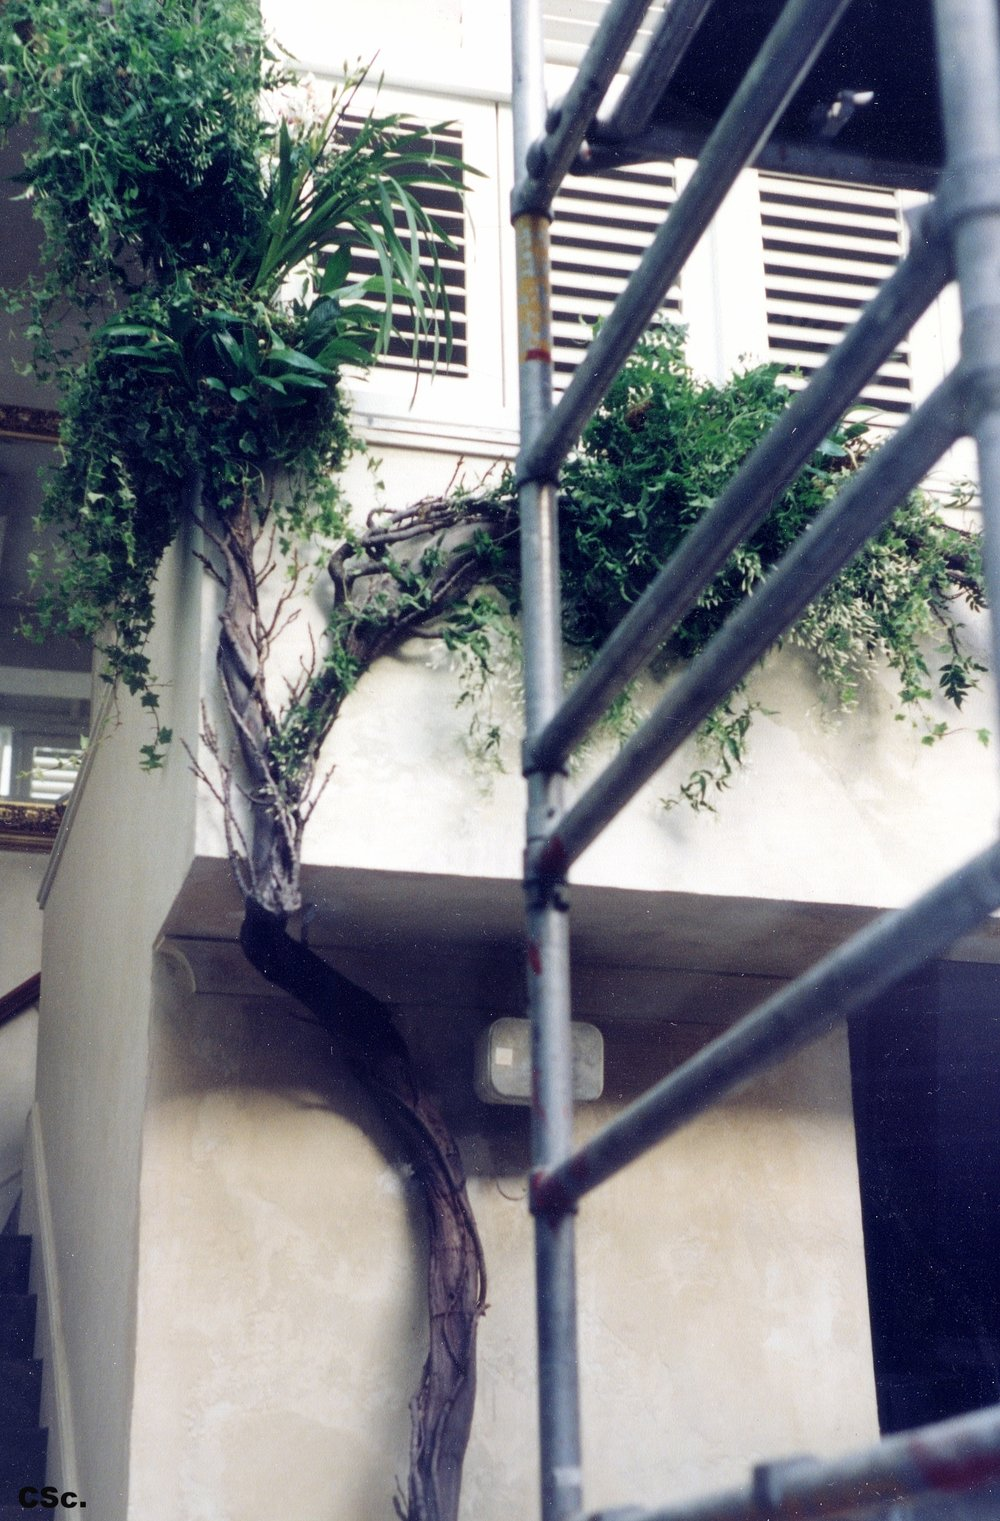 Large Constructed Planted Tree for Restaurant, mixed media, 1991 7.5x4.5m